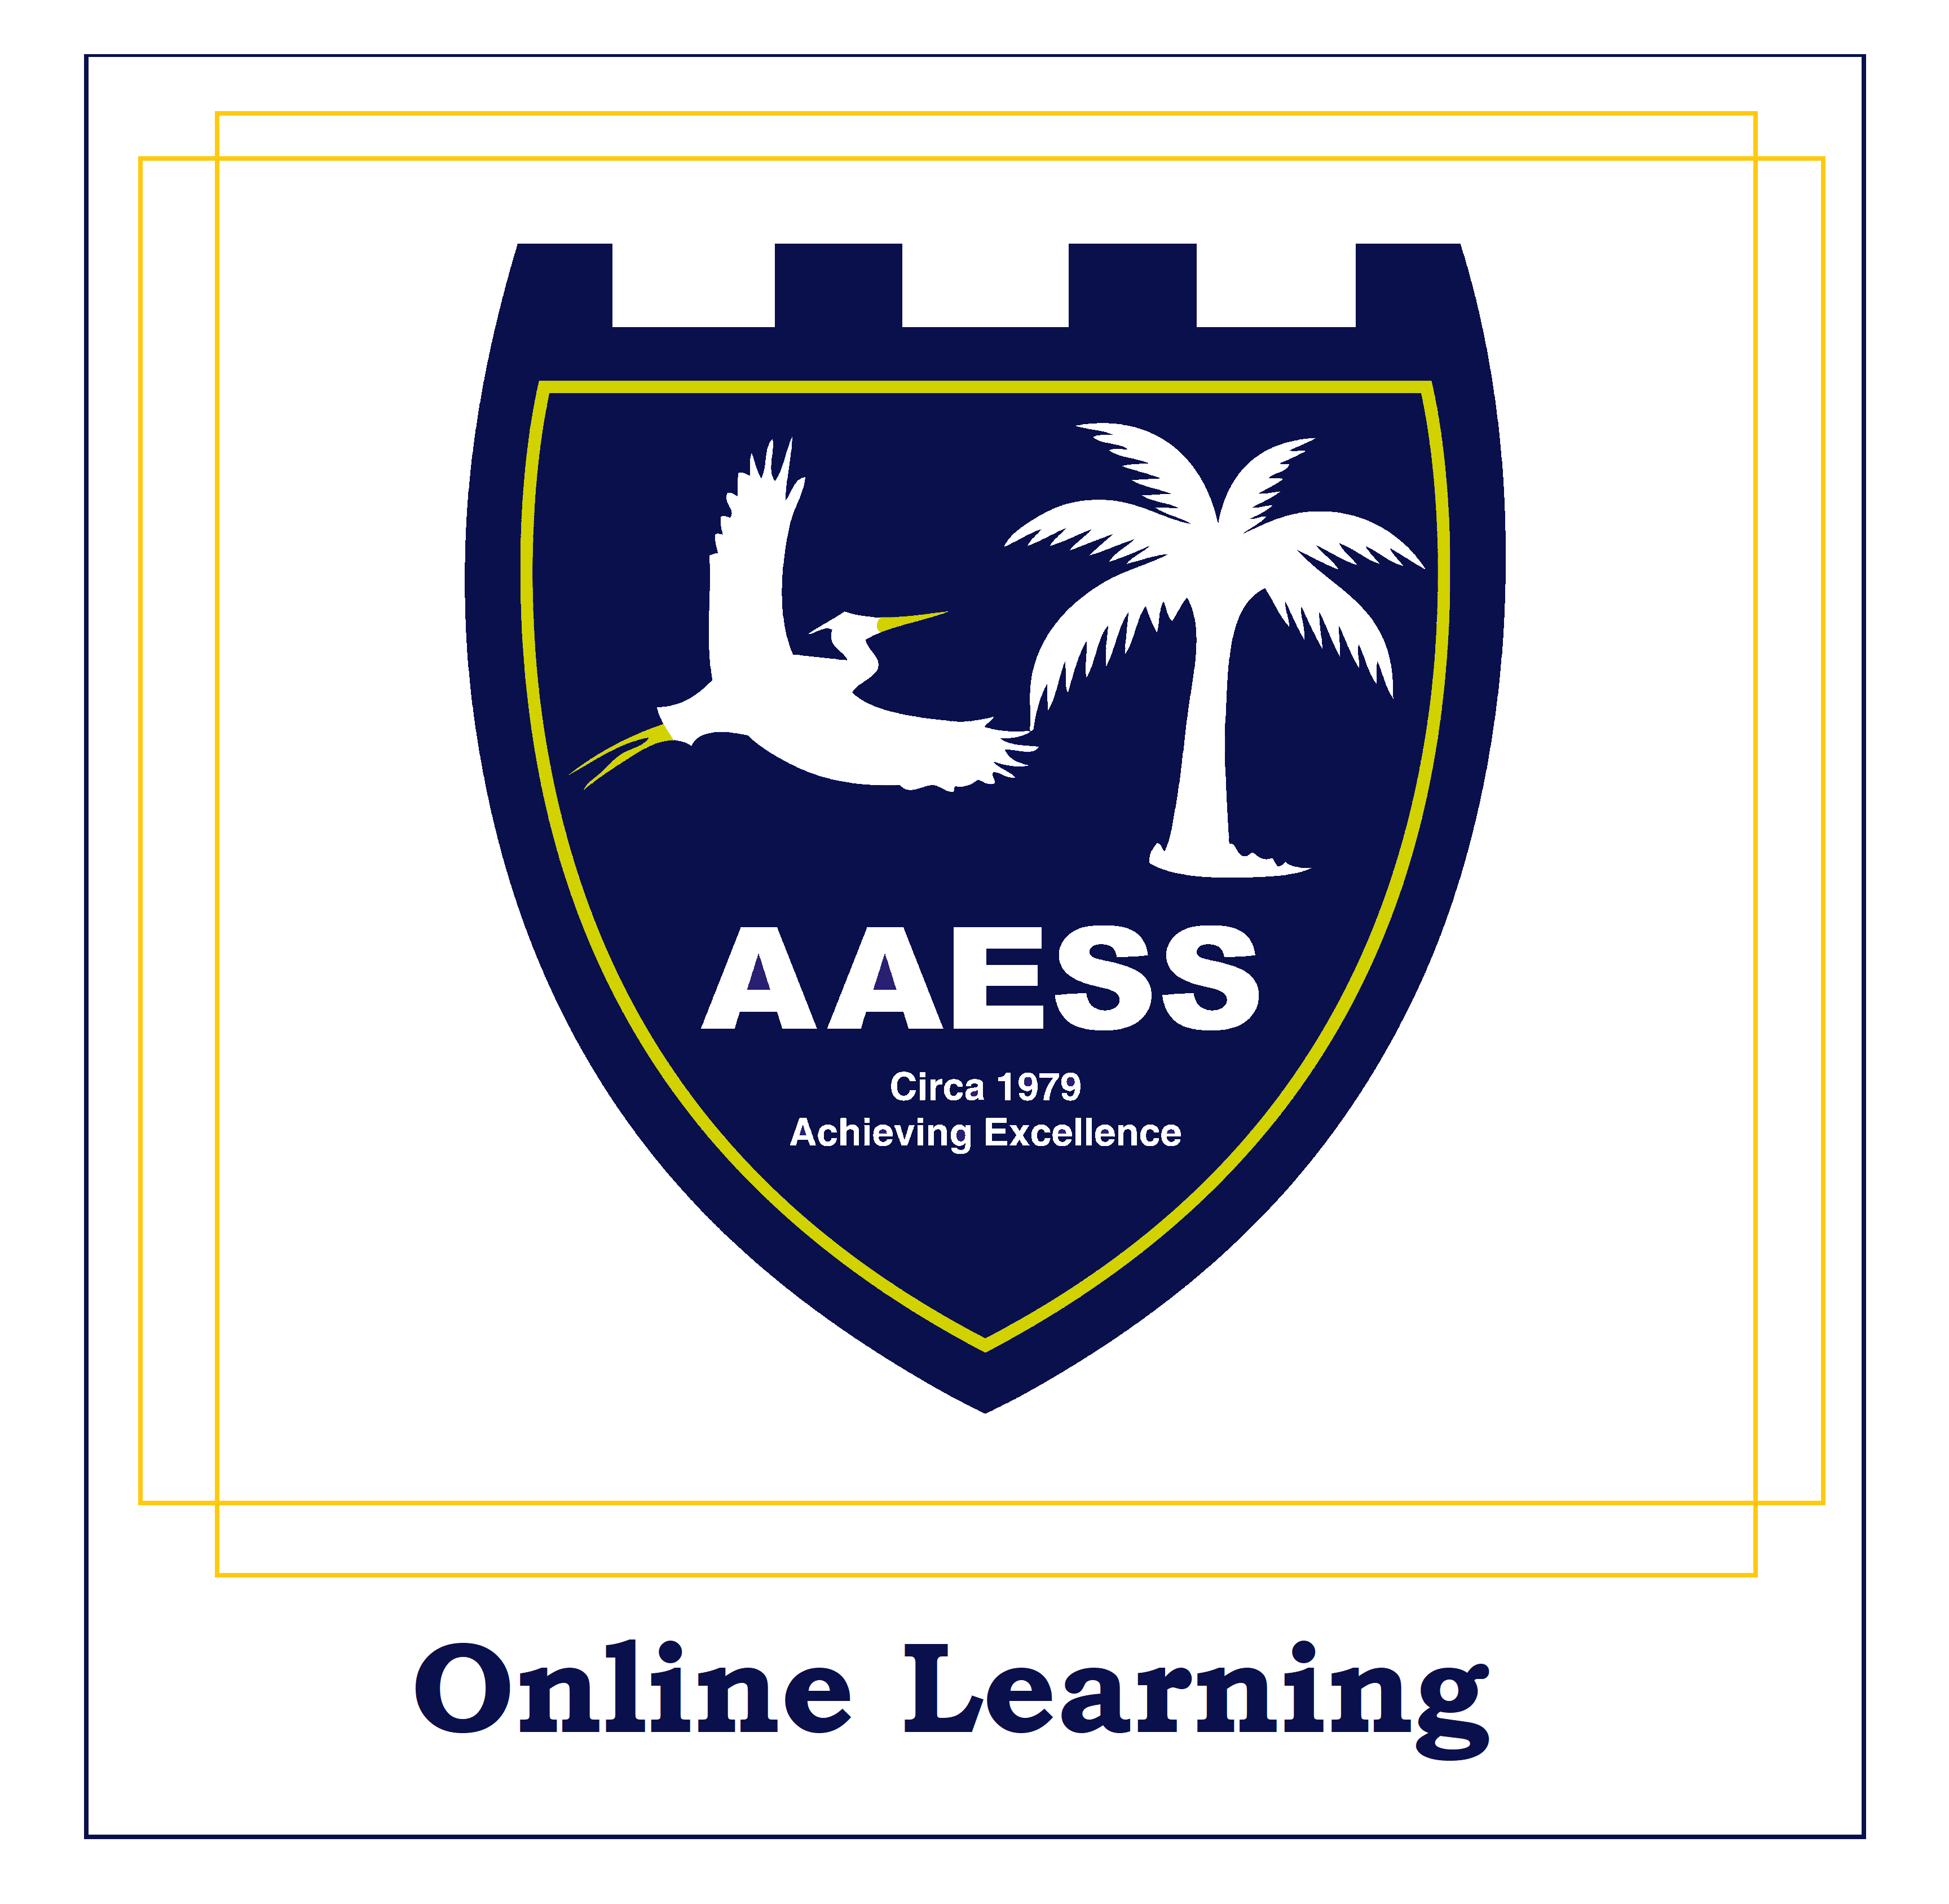 Online Learning is Live!